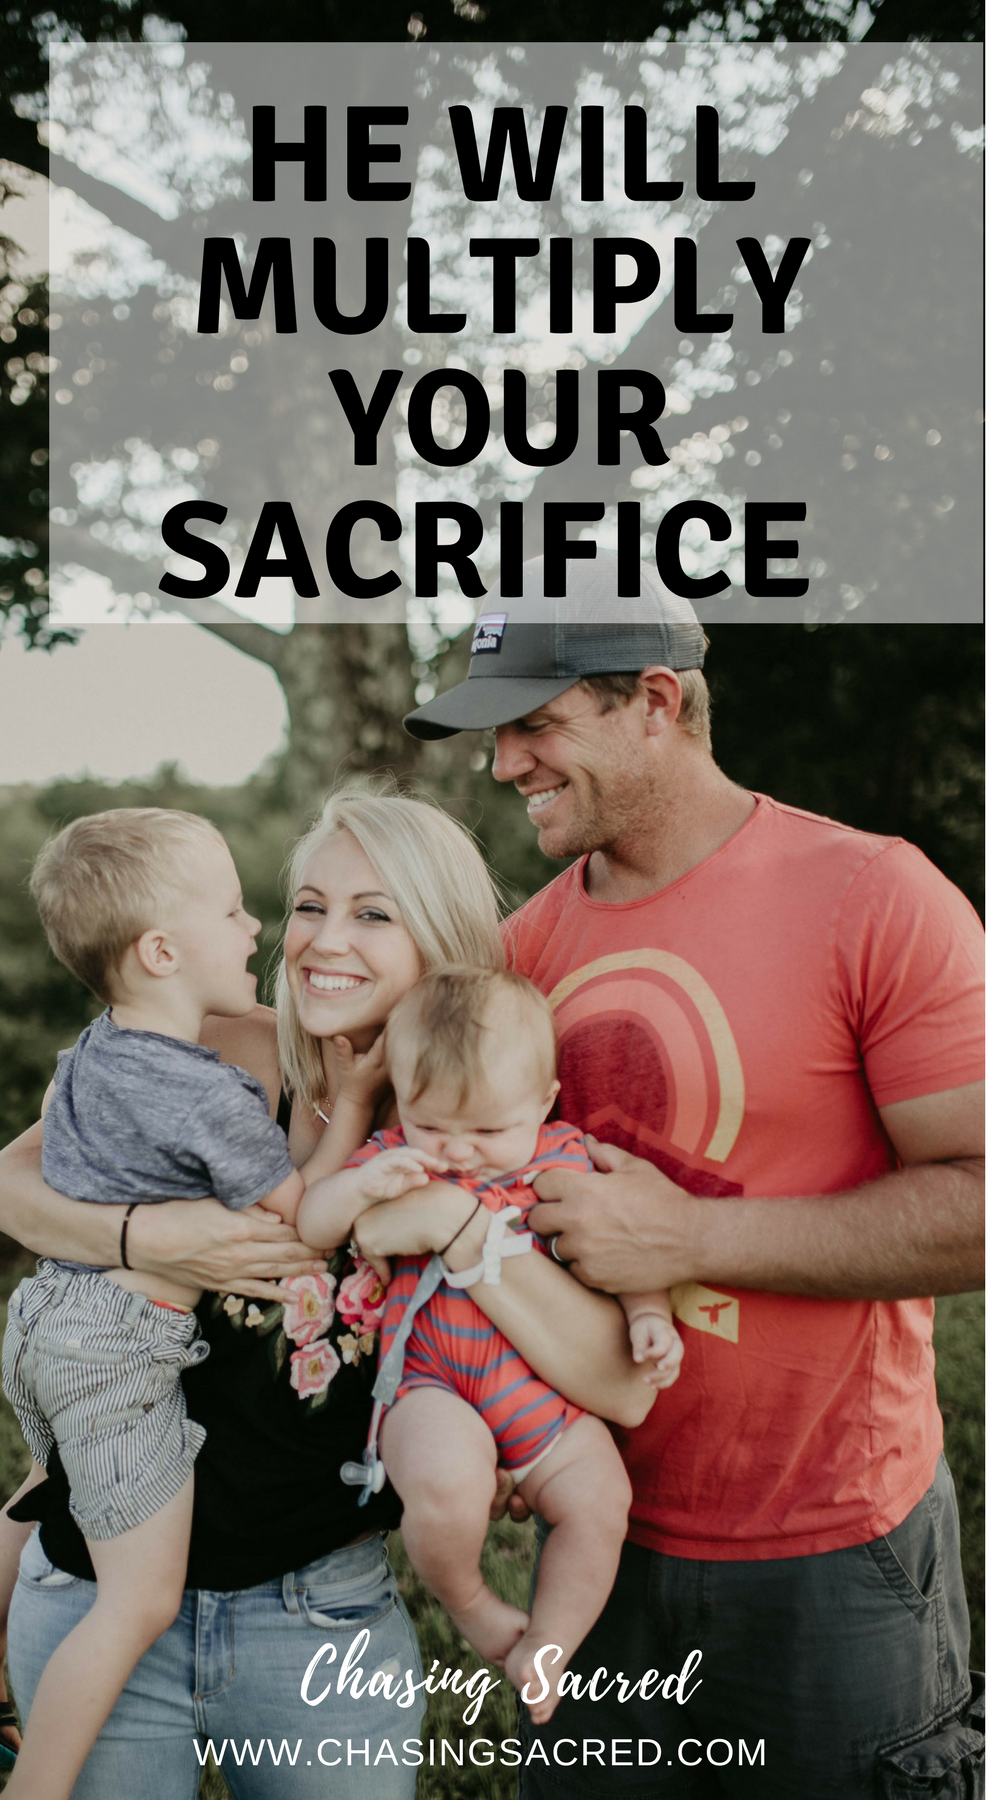 He will multiply your sacrifice | Chasing Sacred